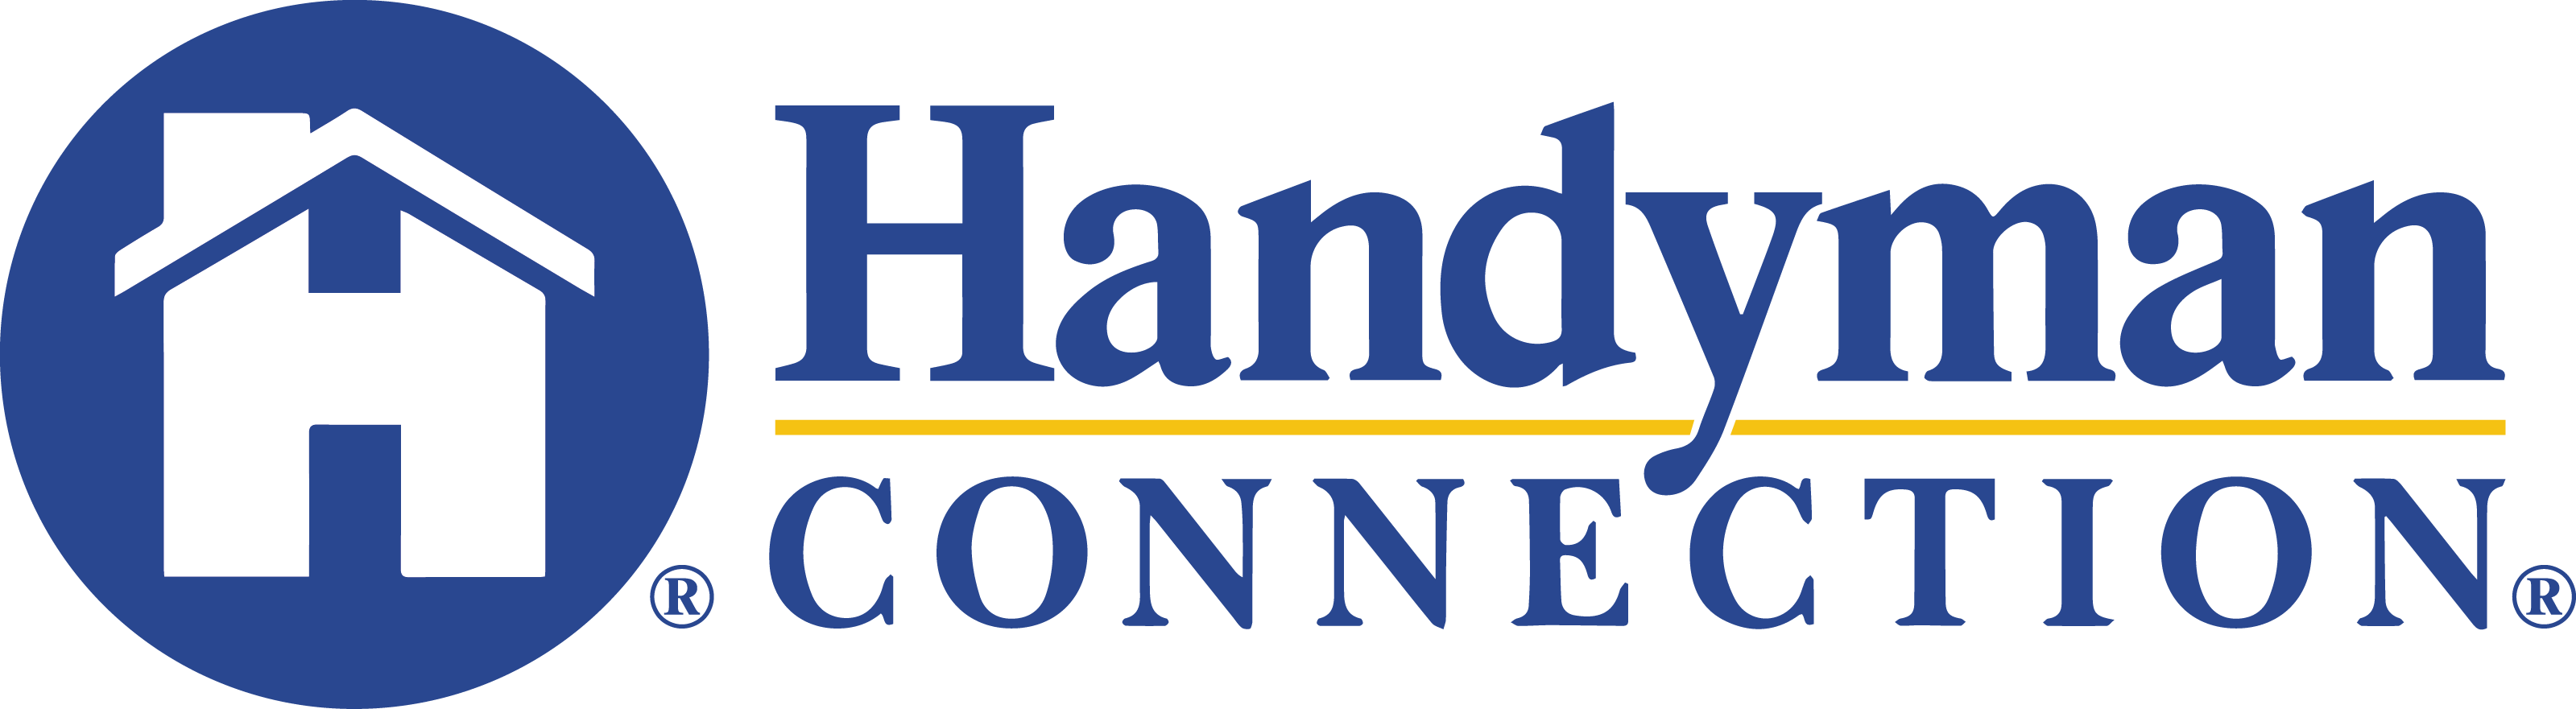 Handyman Connection of Wheaton, IL